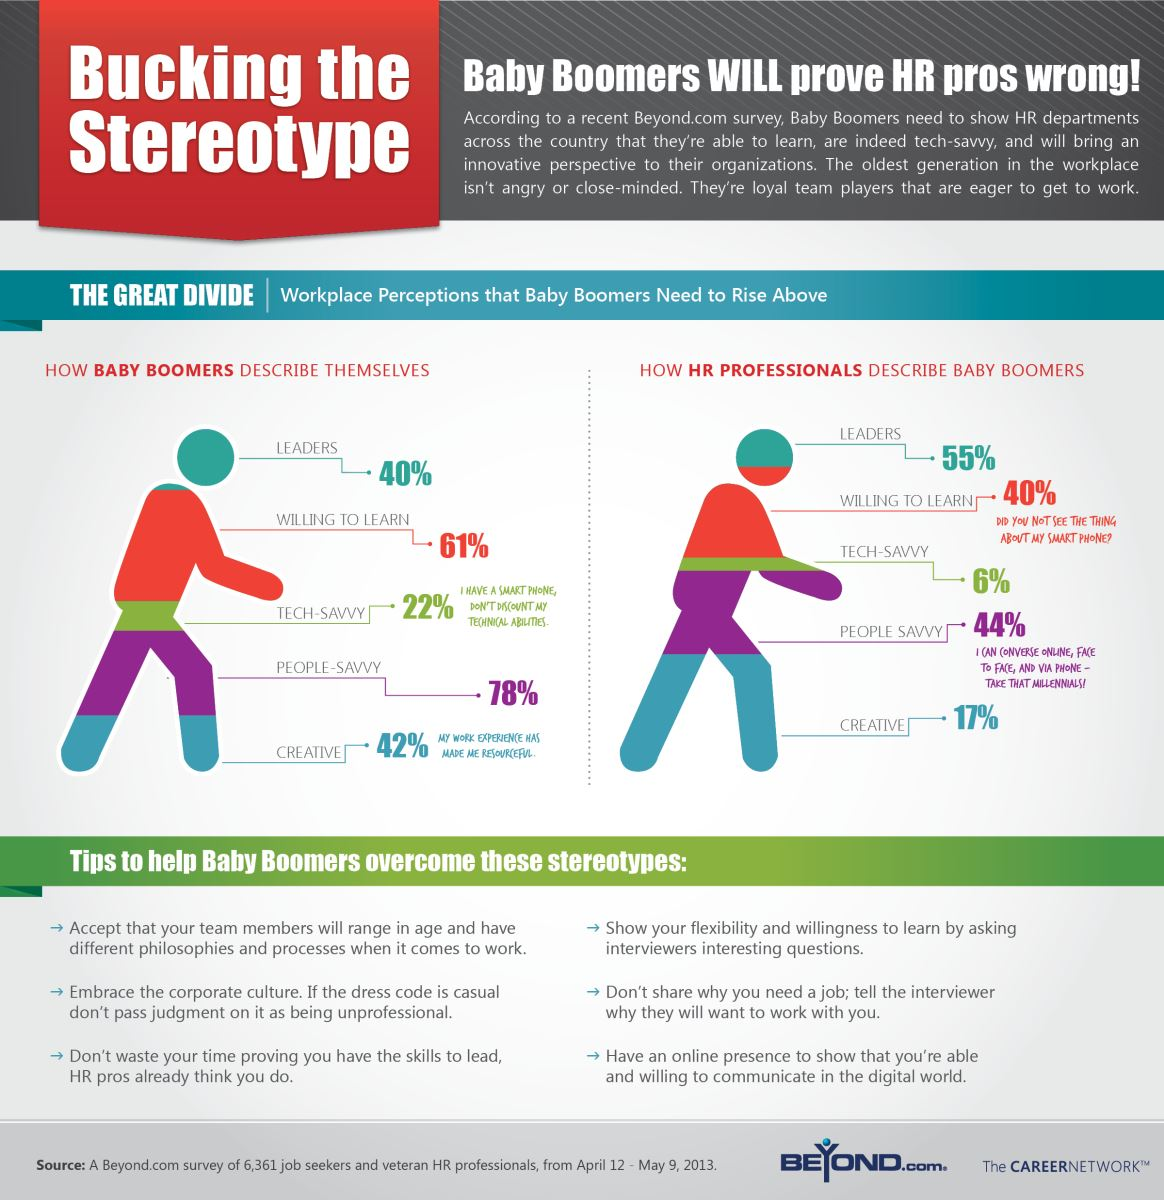 Stereotypes About Baby Boomers